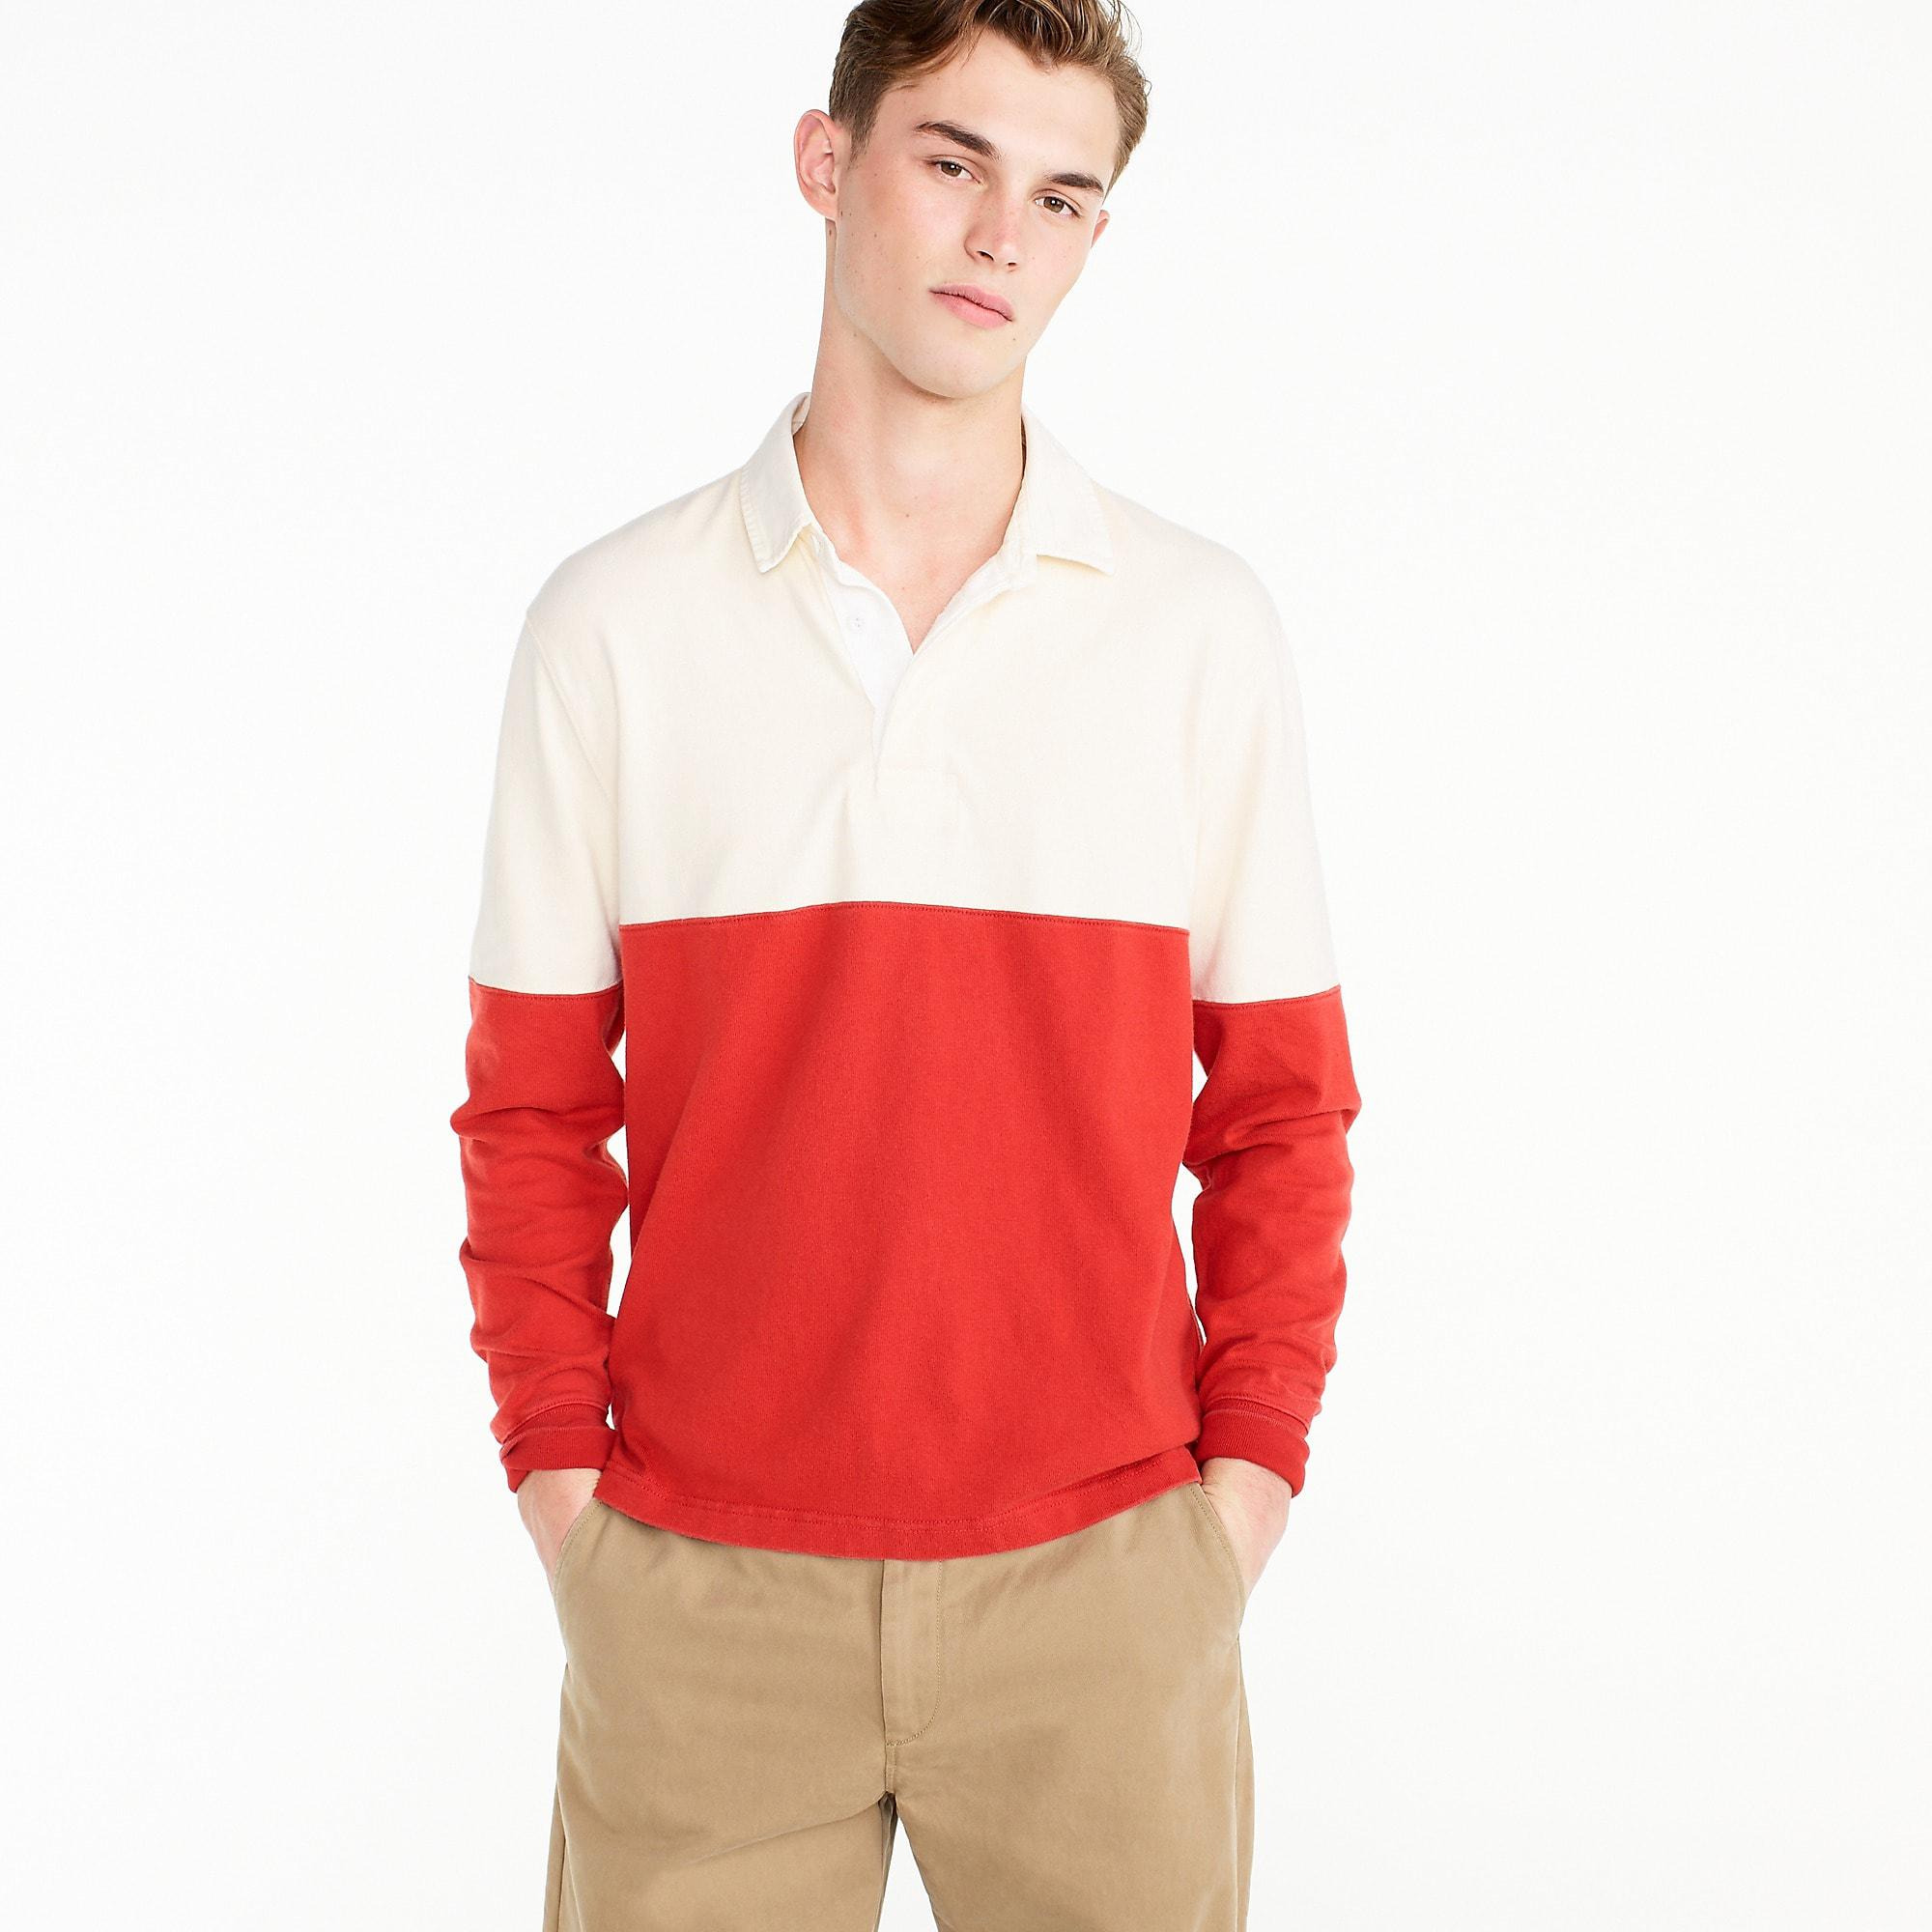 0855a9a113d J.Crew Unisex 1984 Rugby Shirt In Colorblock in Red for Men - Lyst